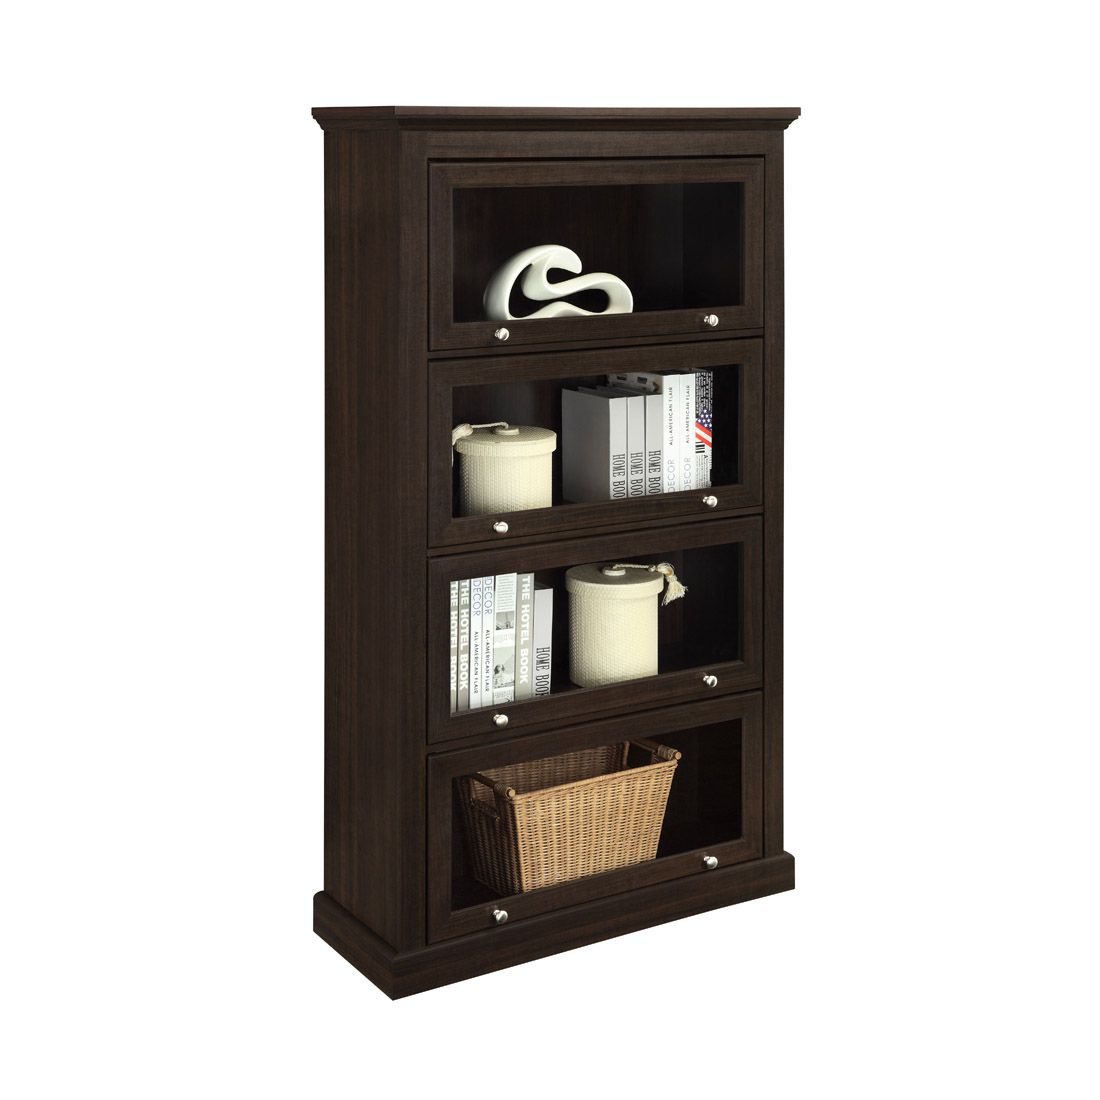 Image of: Barrister Bookcase Style